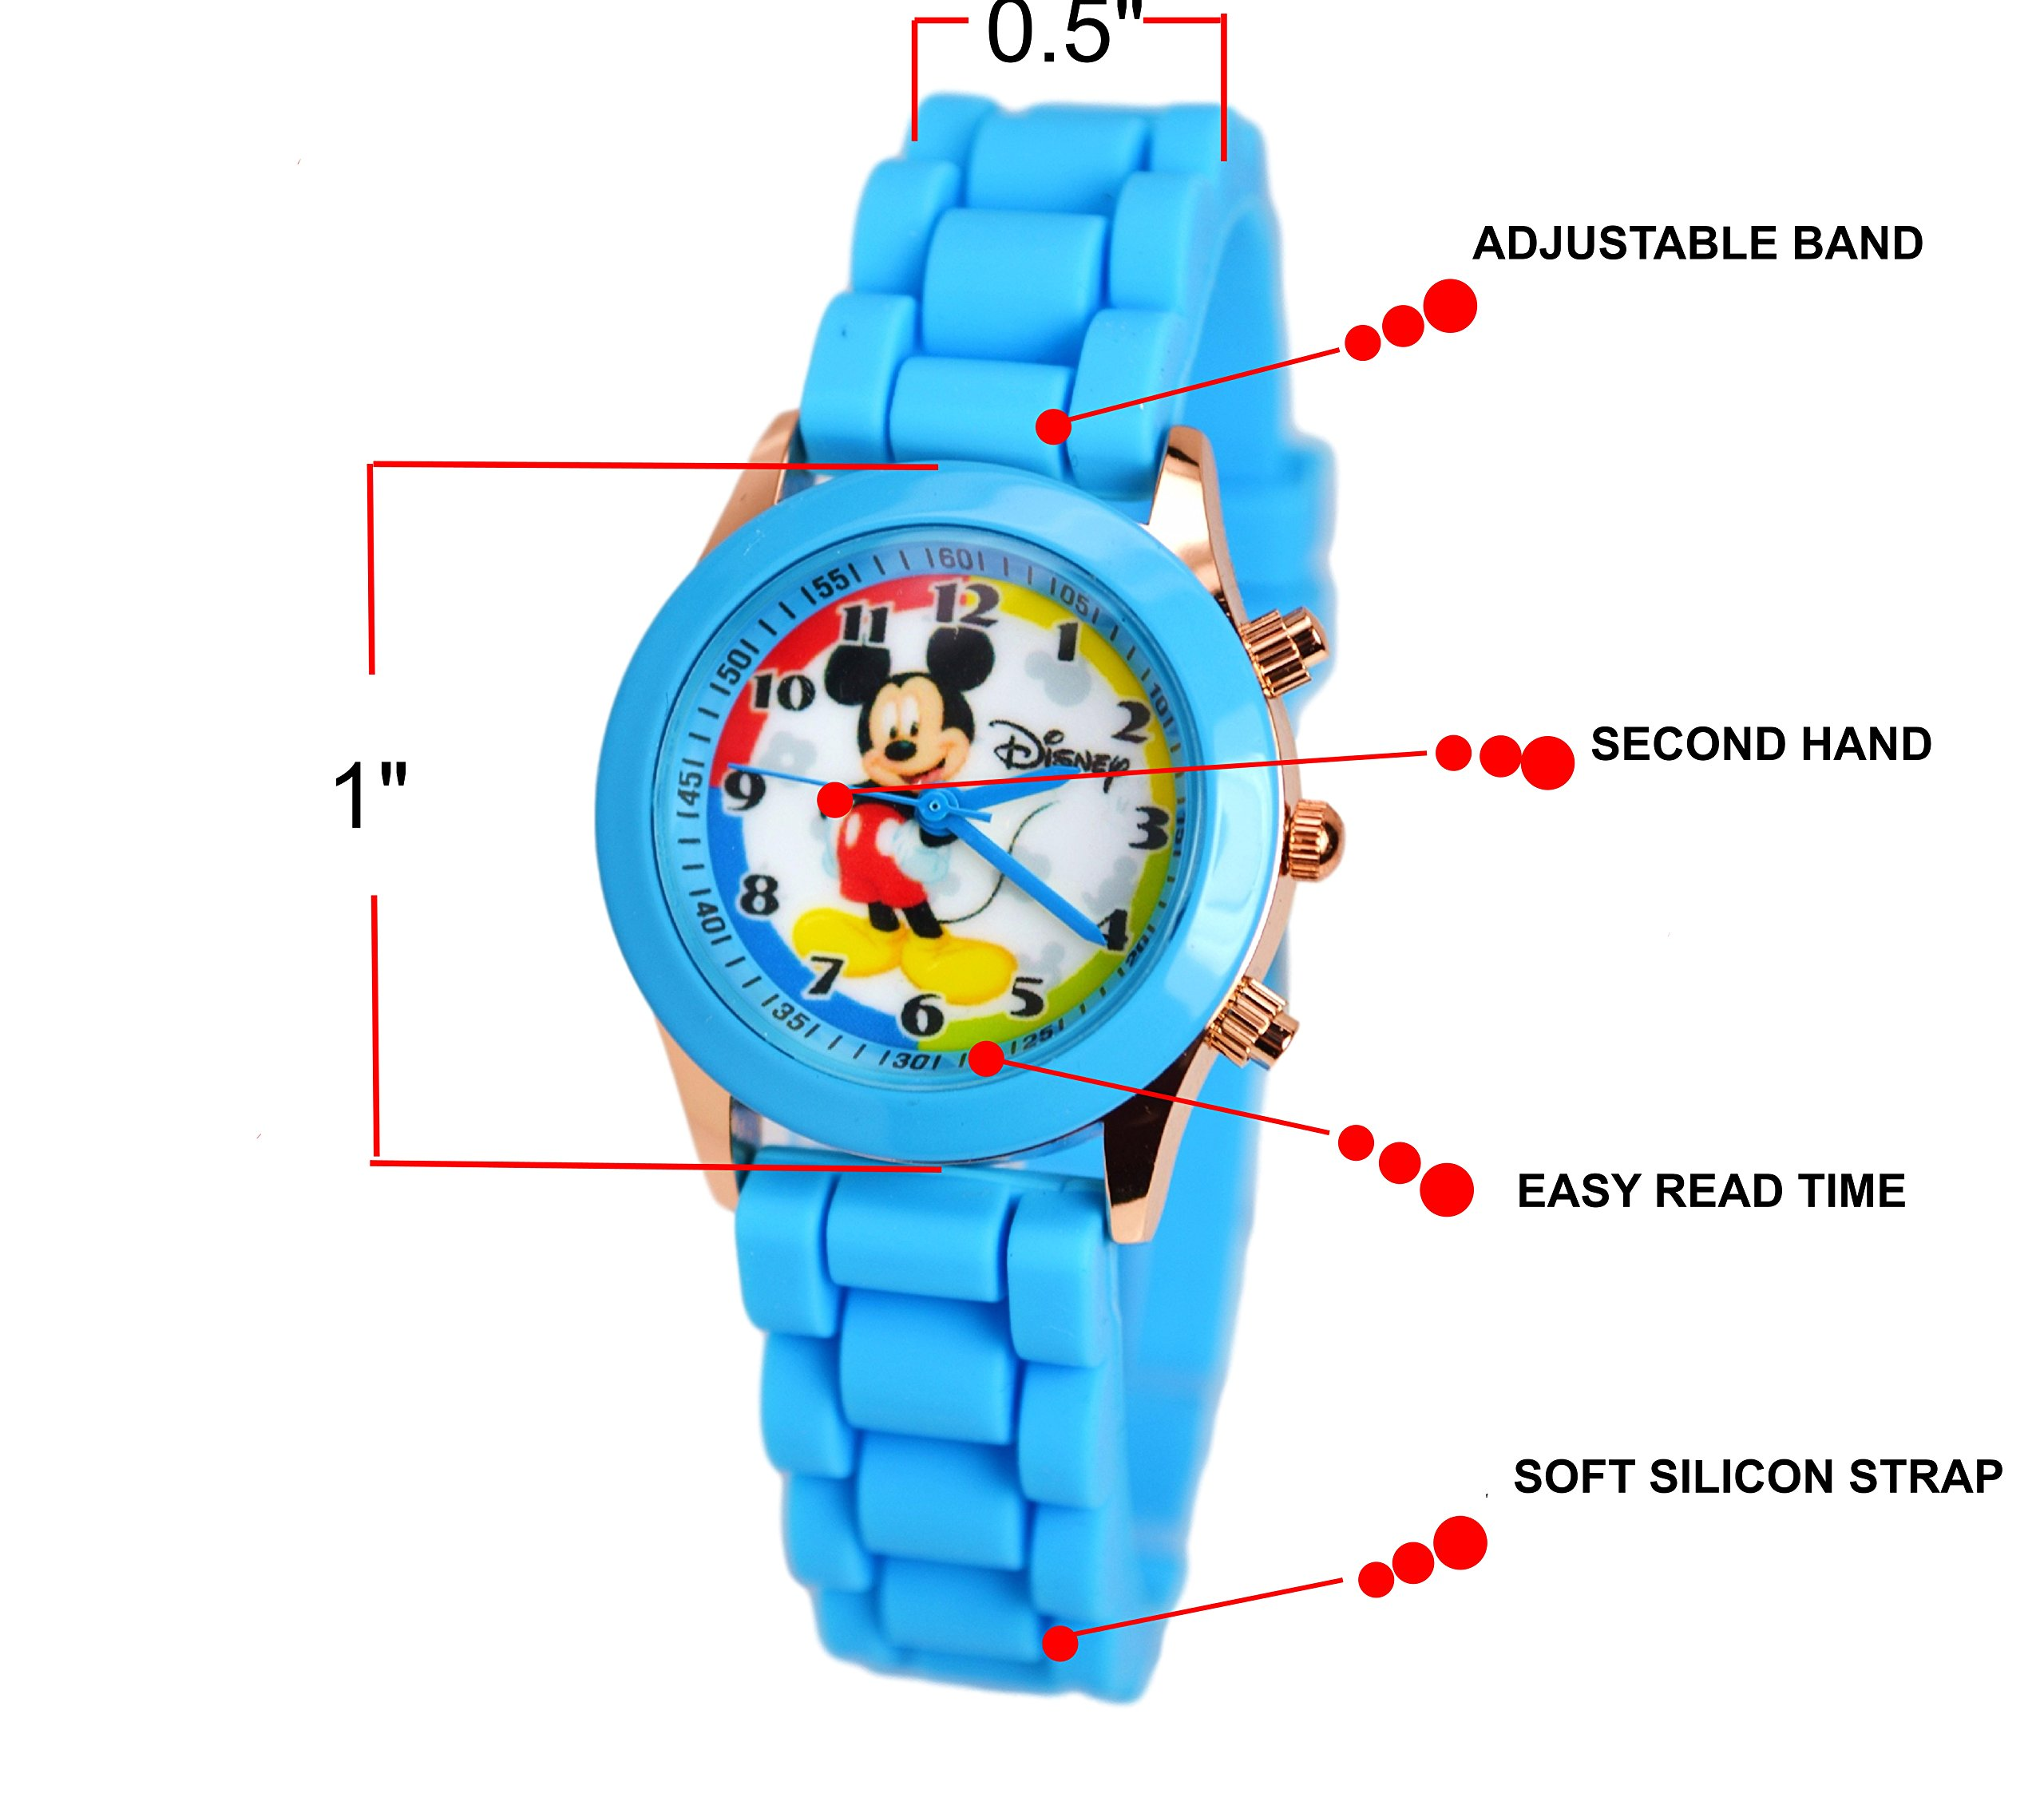 Disney Mickey Mouse Watch W/Fashion Buttons In Can Pen/Glasses Box. Small Analog Display. (blue)